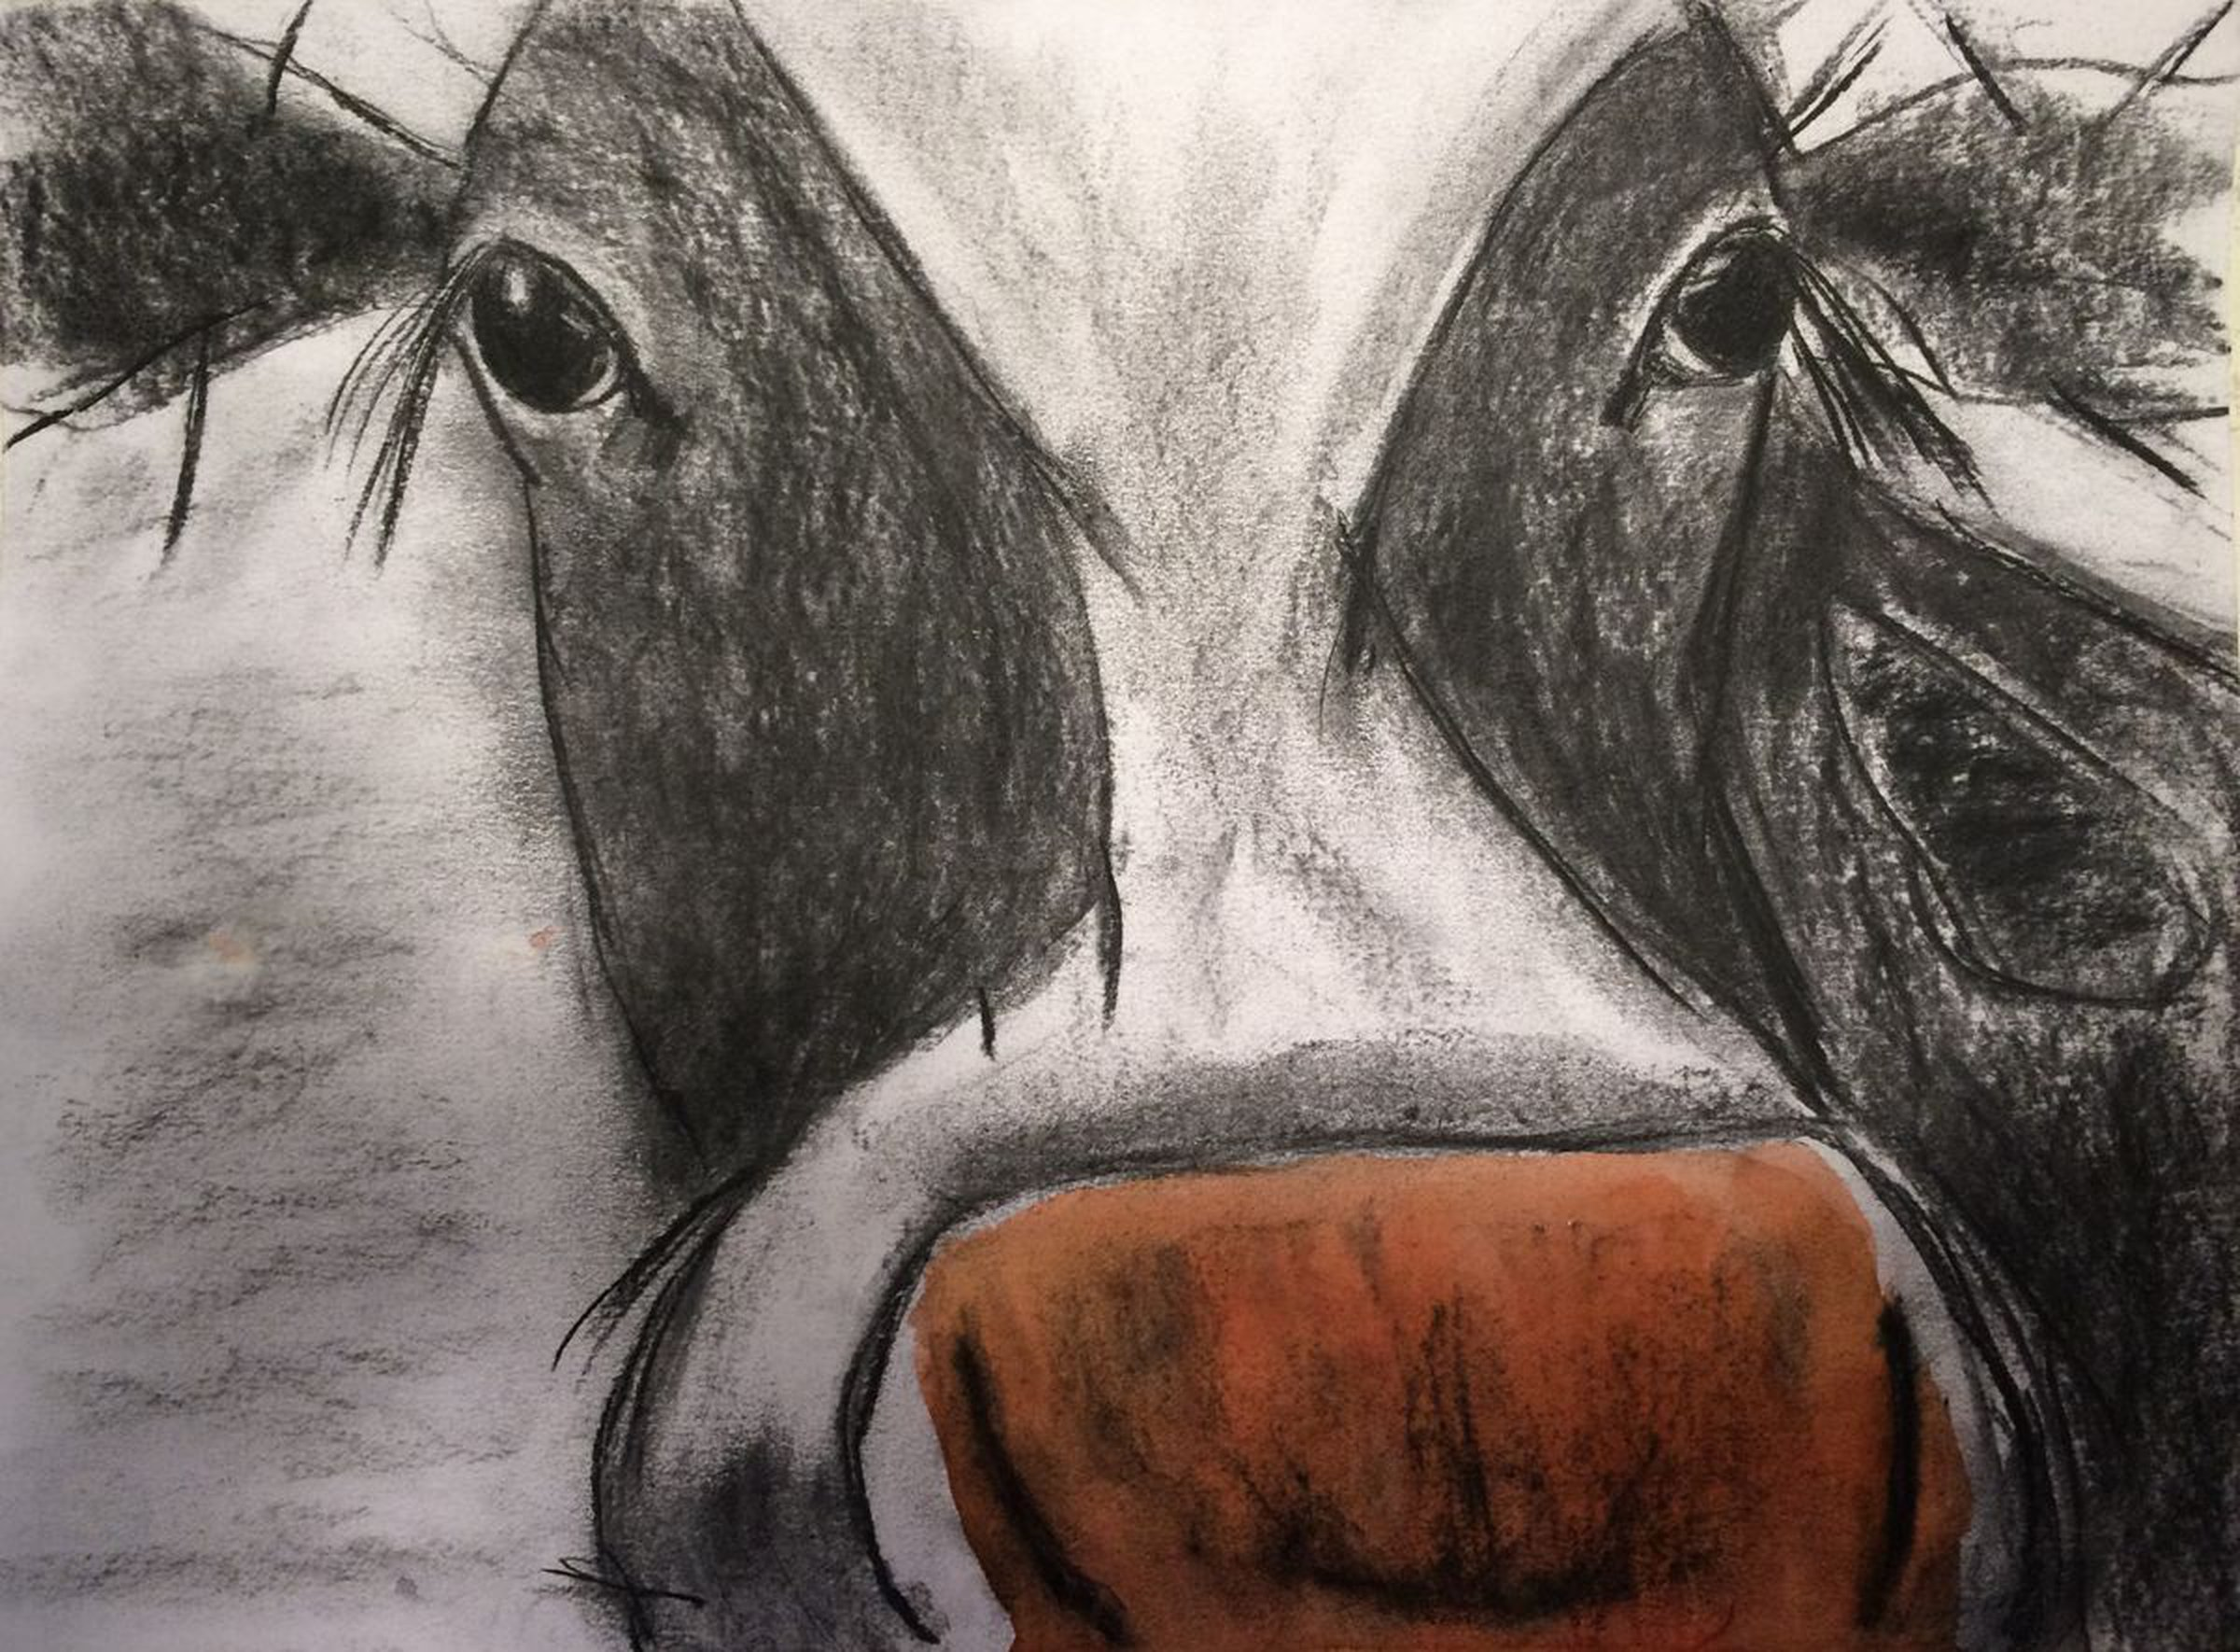 Cow Sketch in Charcoal